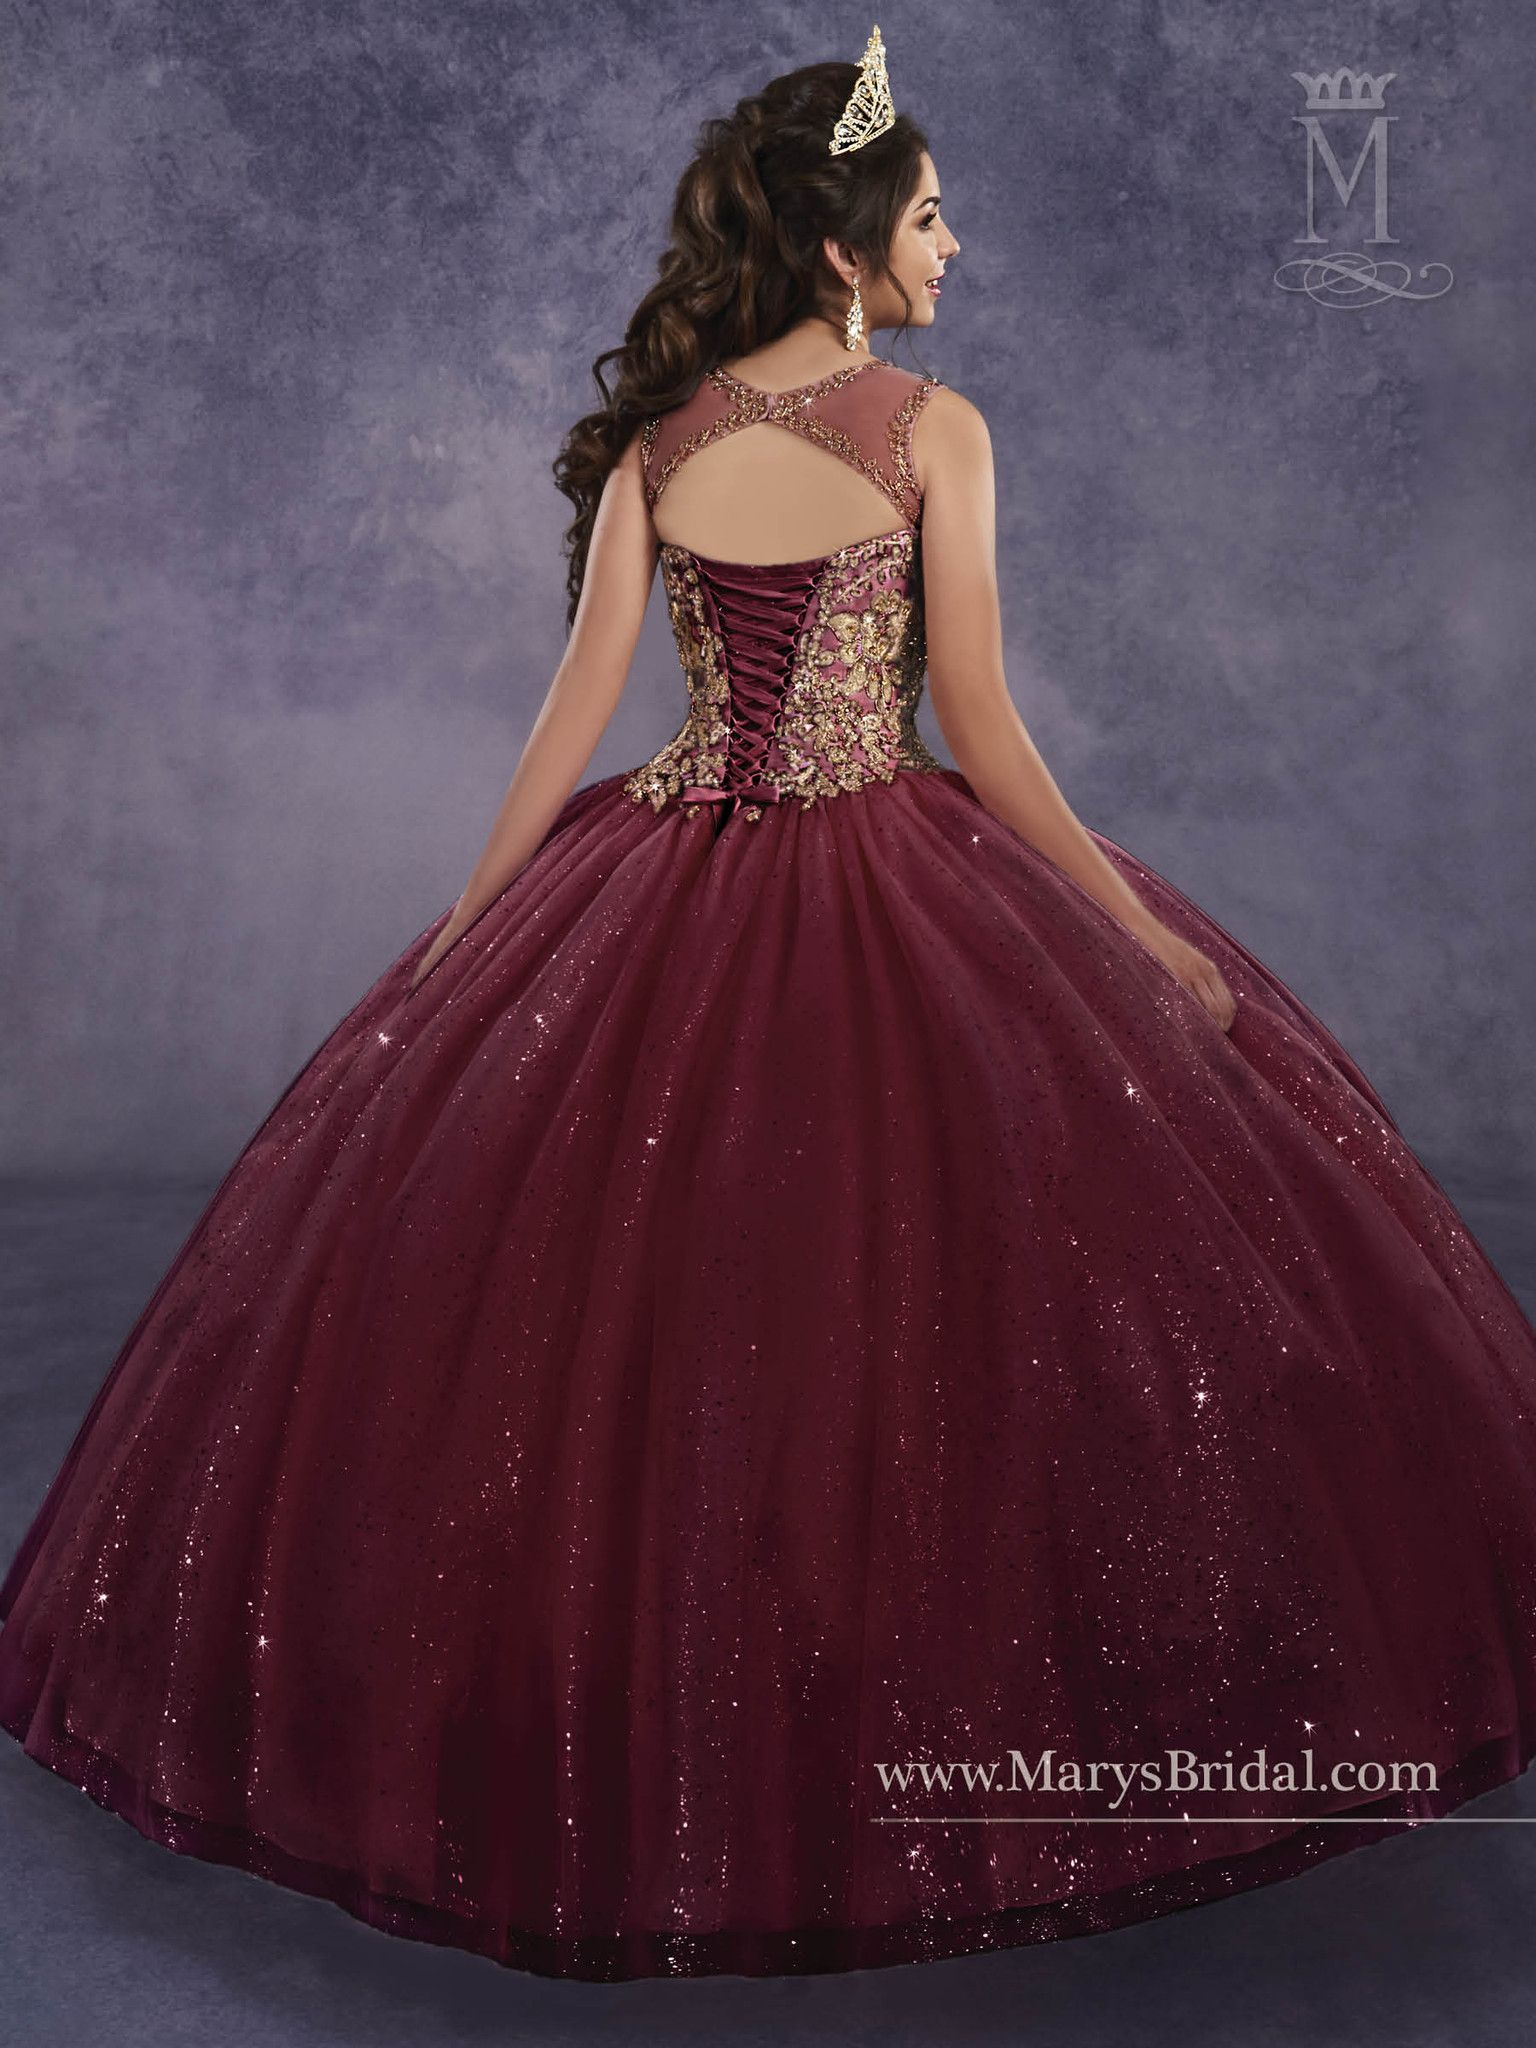 ce061b238e8 Mary s Bridal Princess Collection Quinceanera Dress Style 4Q496